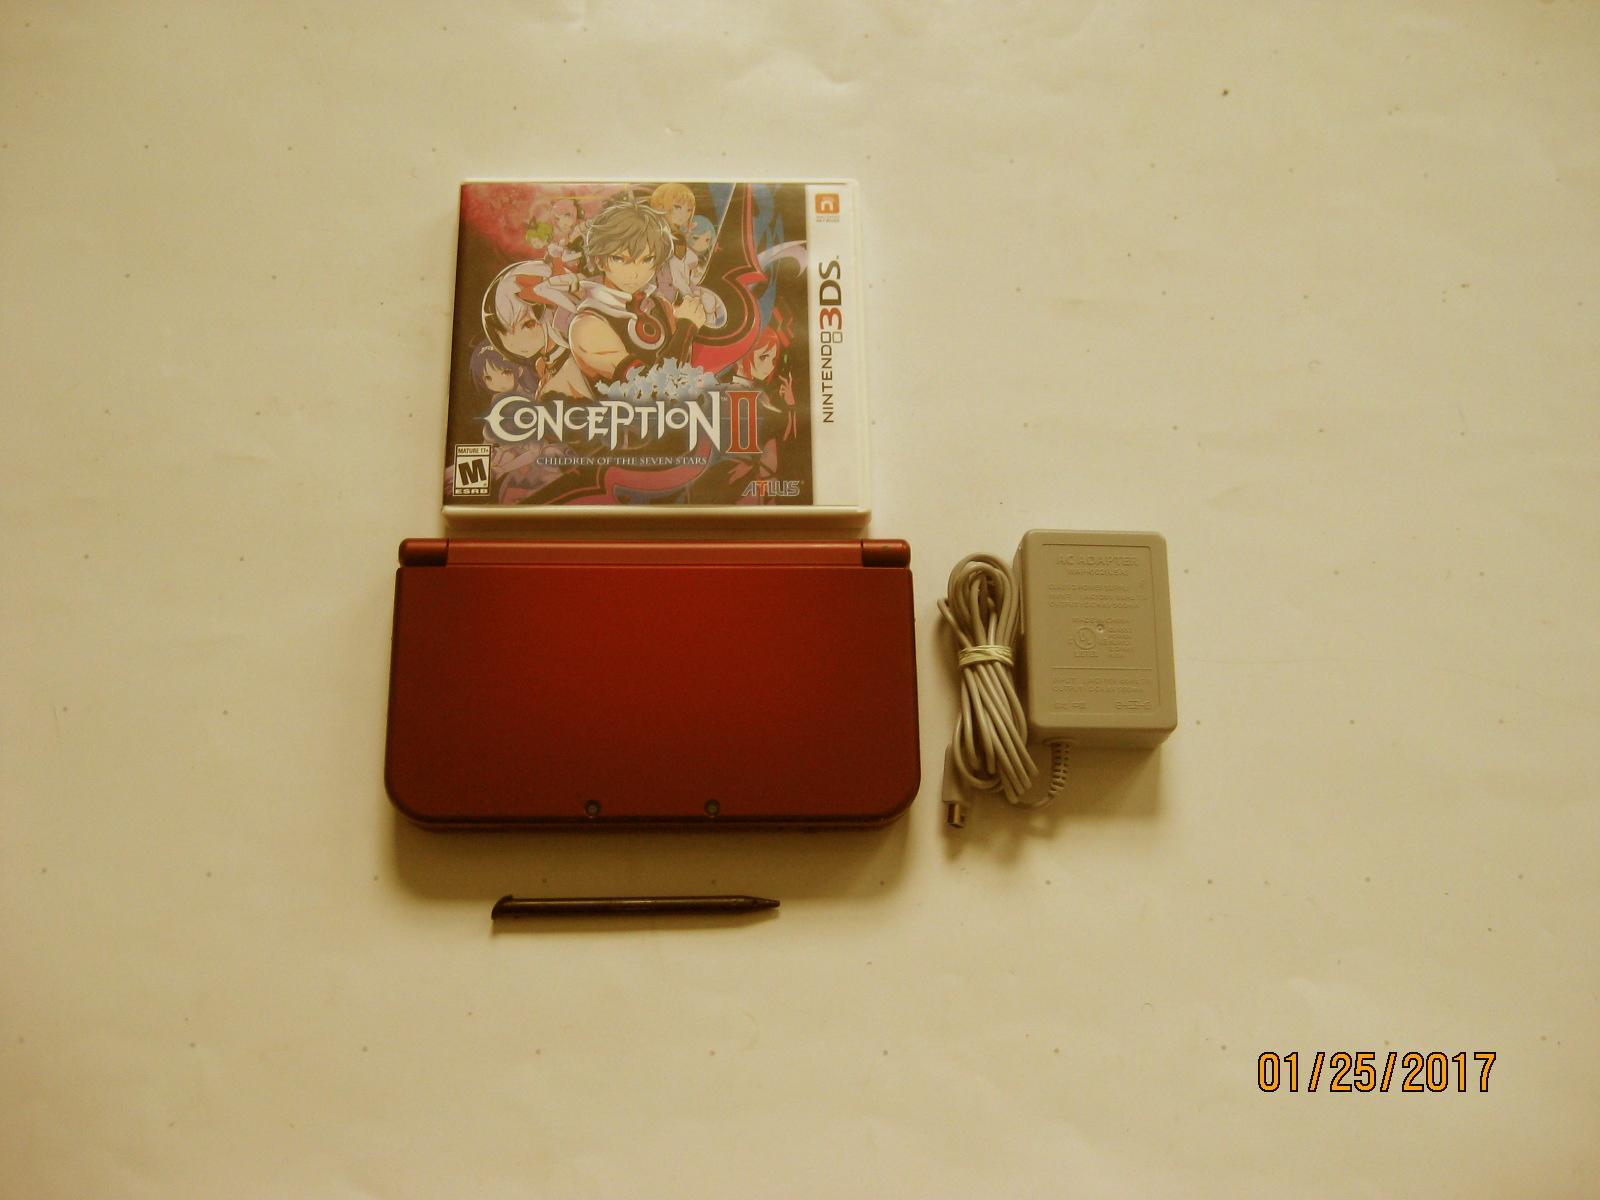 Primary image for Red Nintendo New 3ds xl w Conception II & More!!!